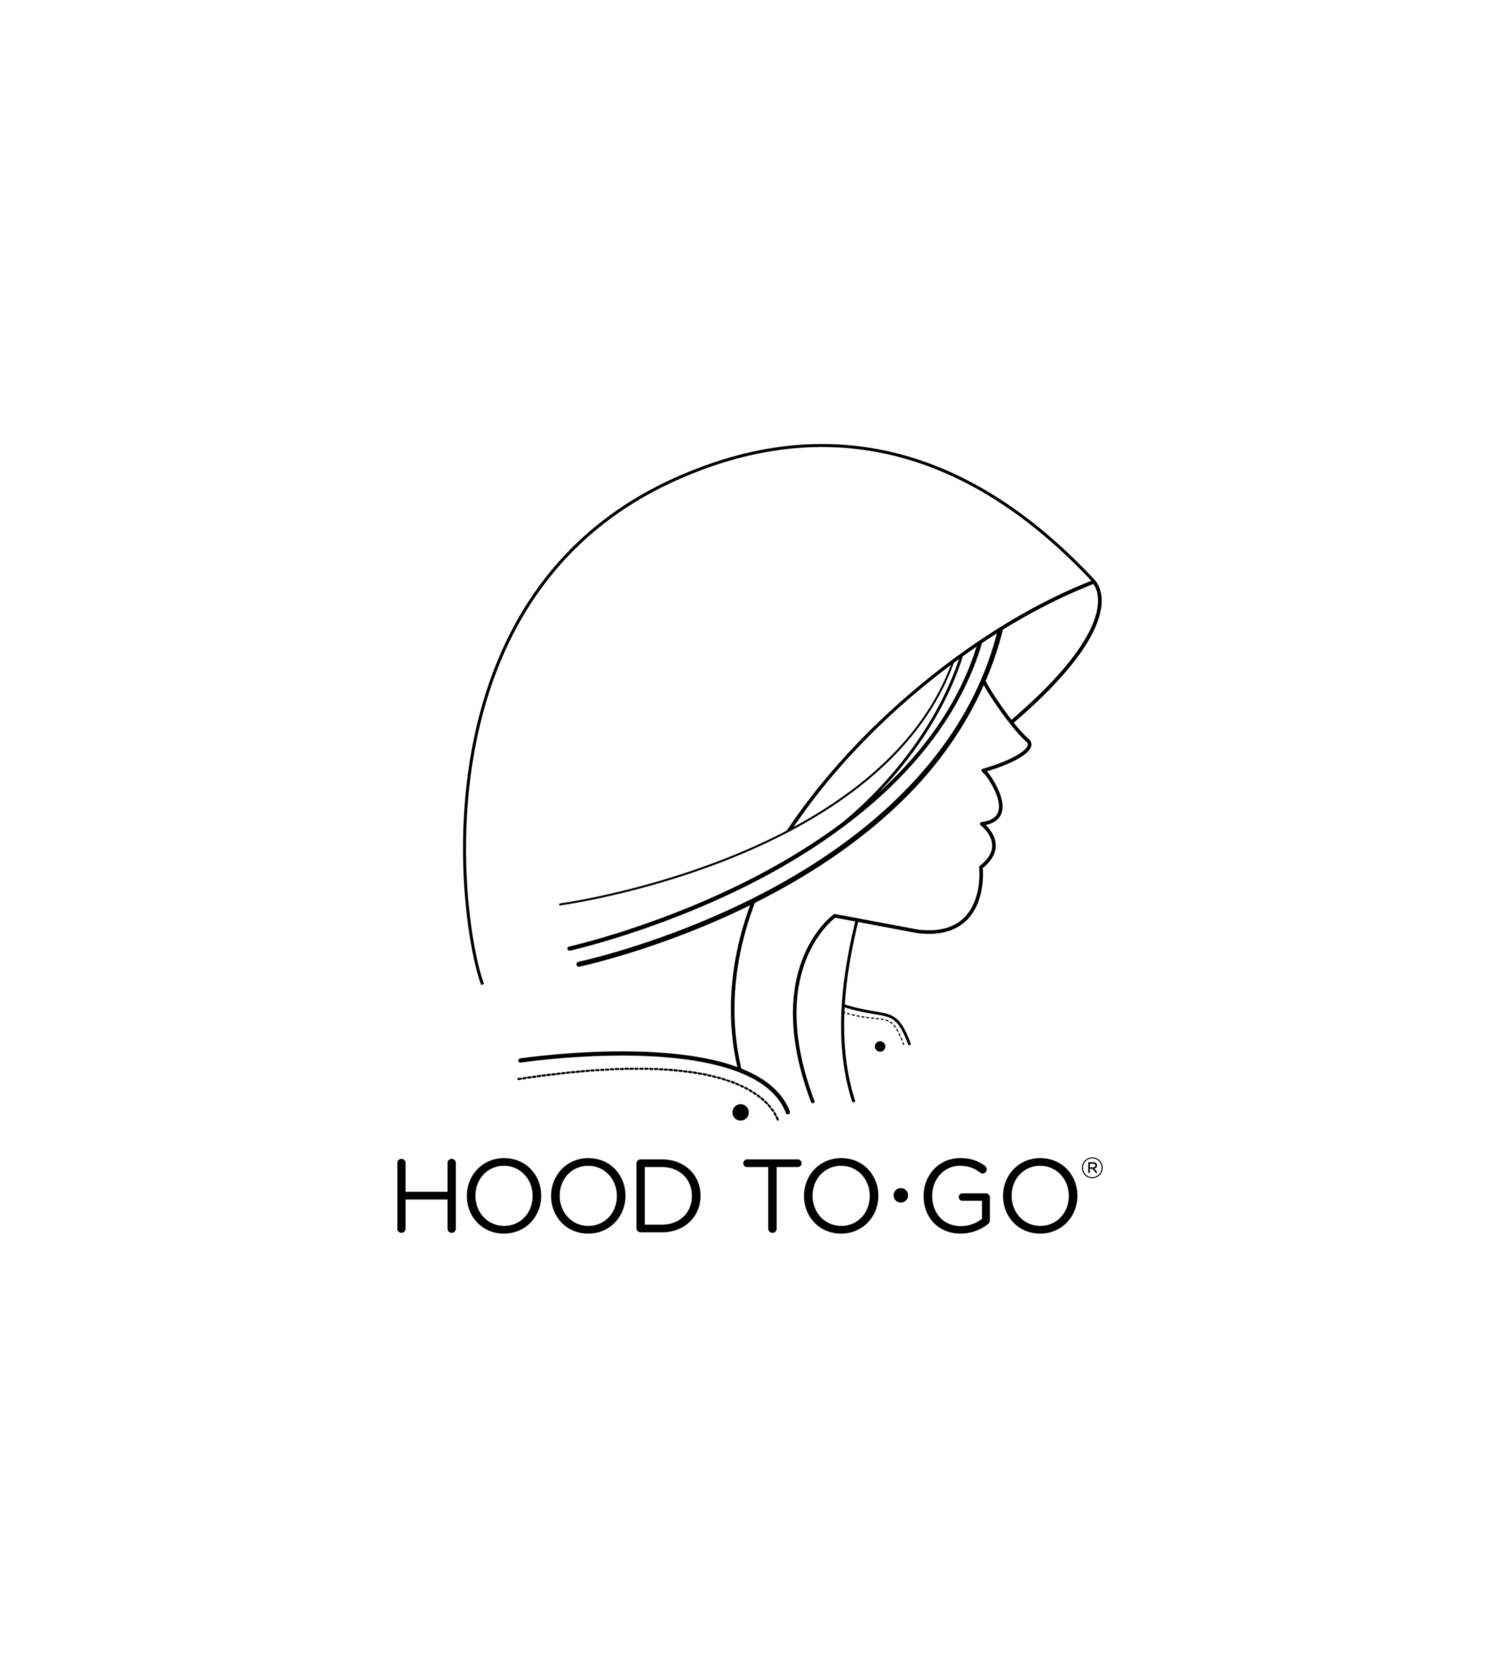 Hooded drawing hood. To go home